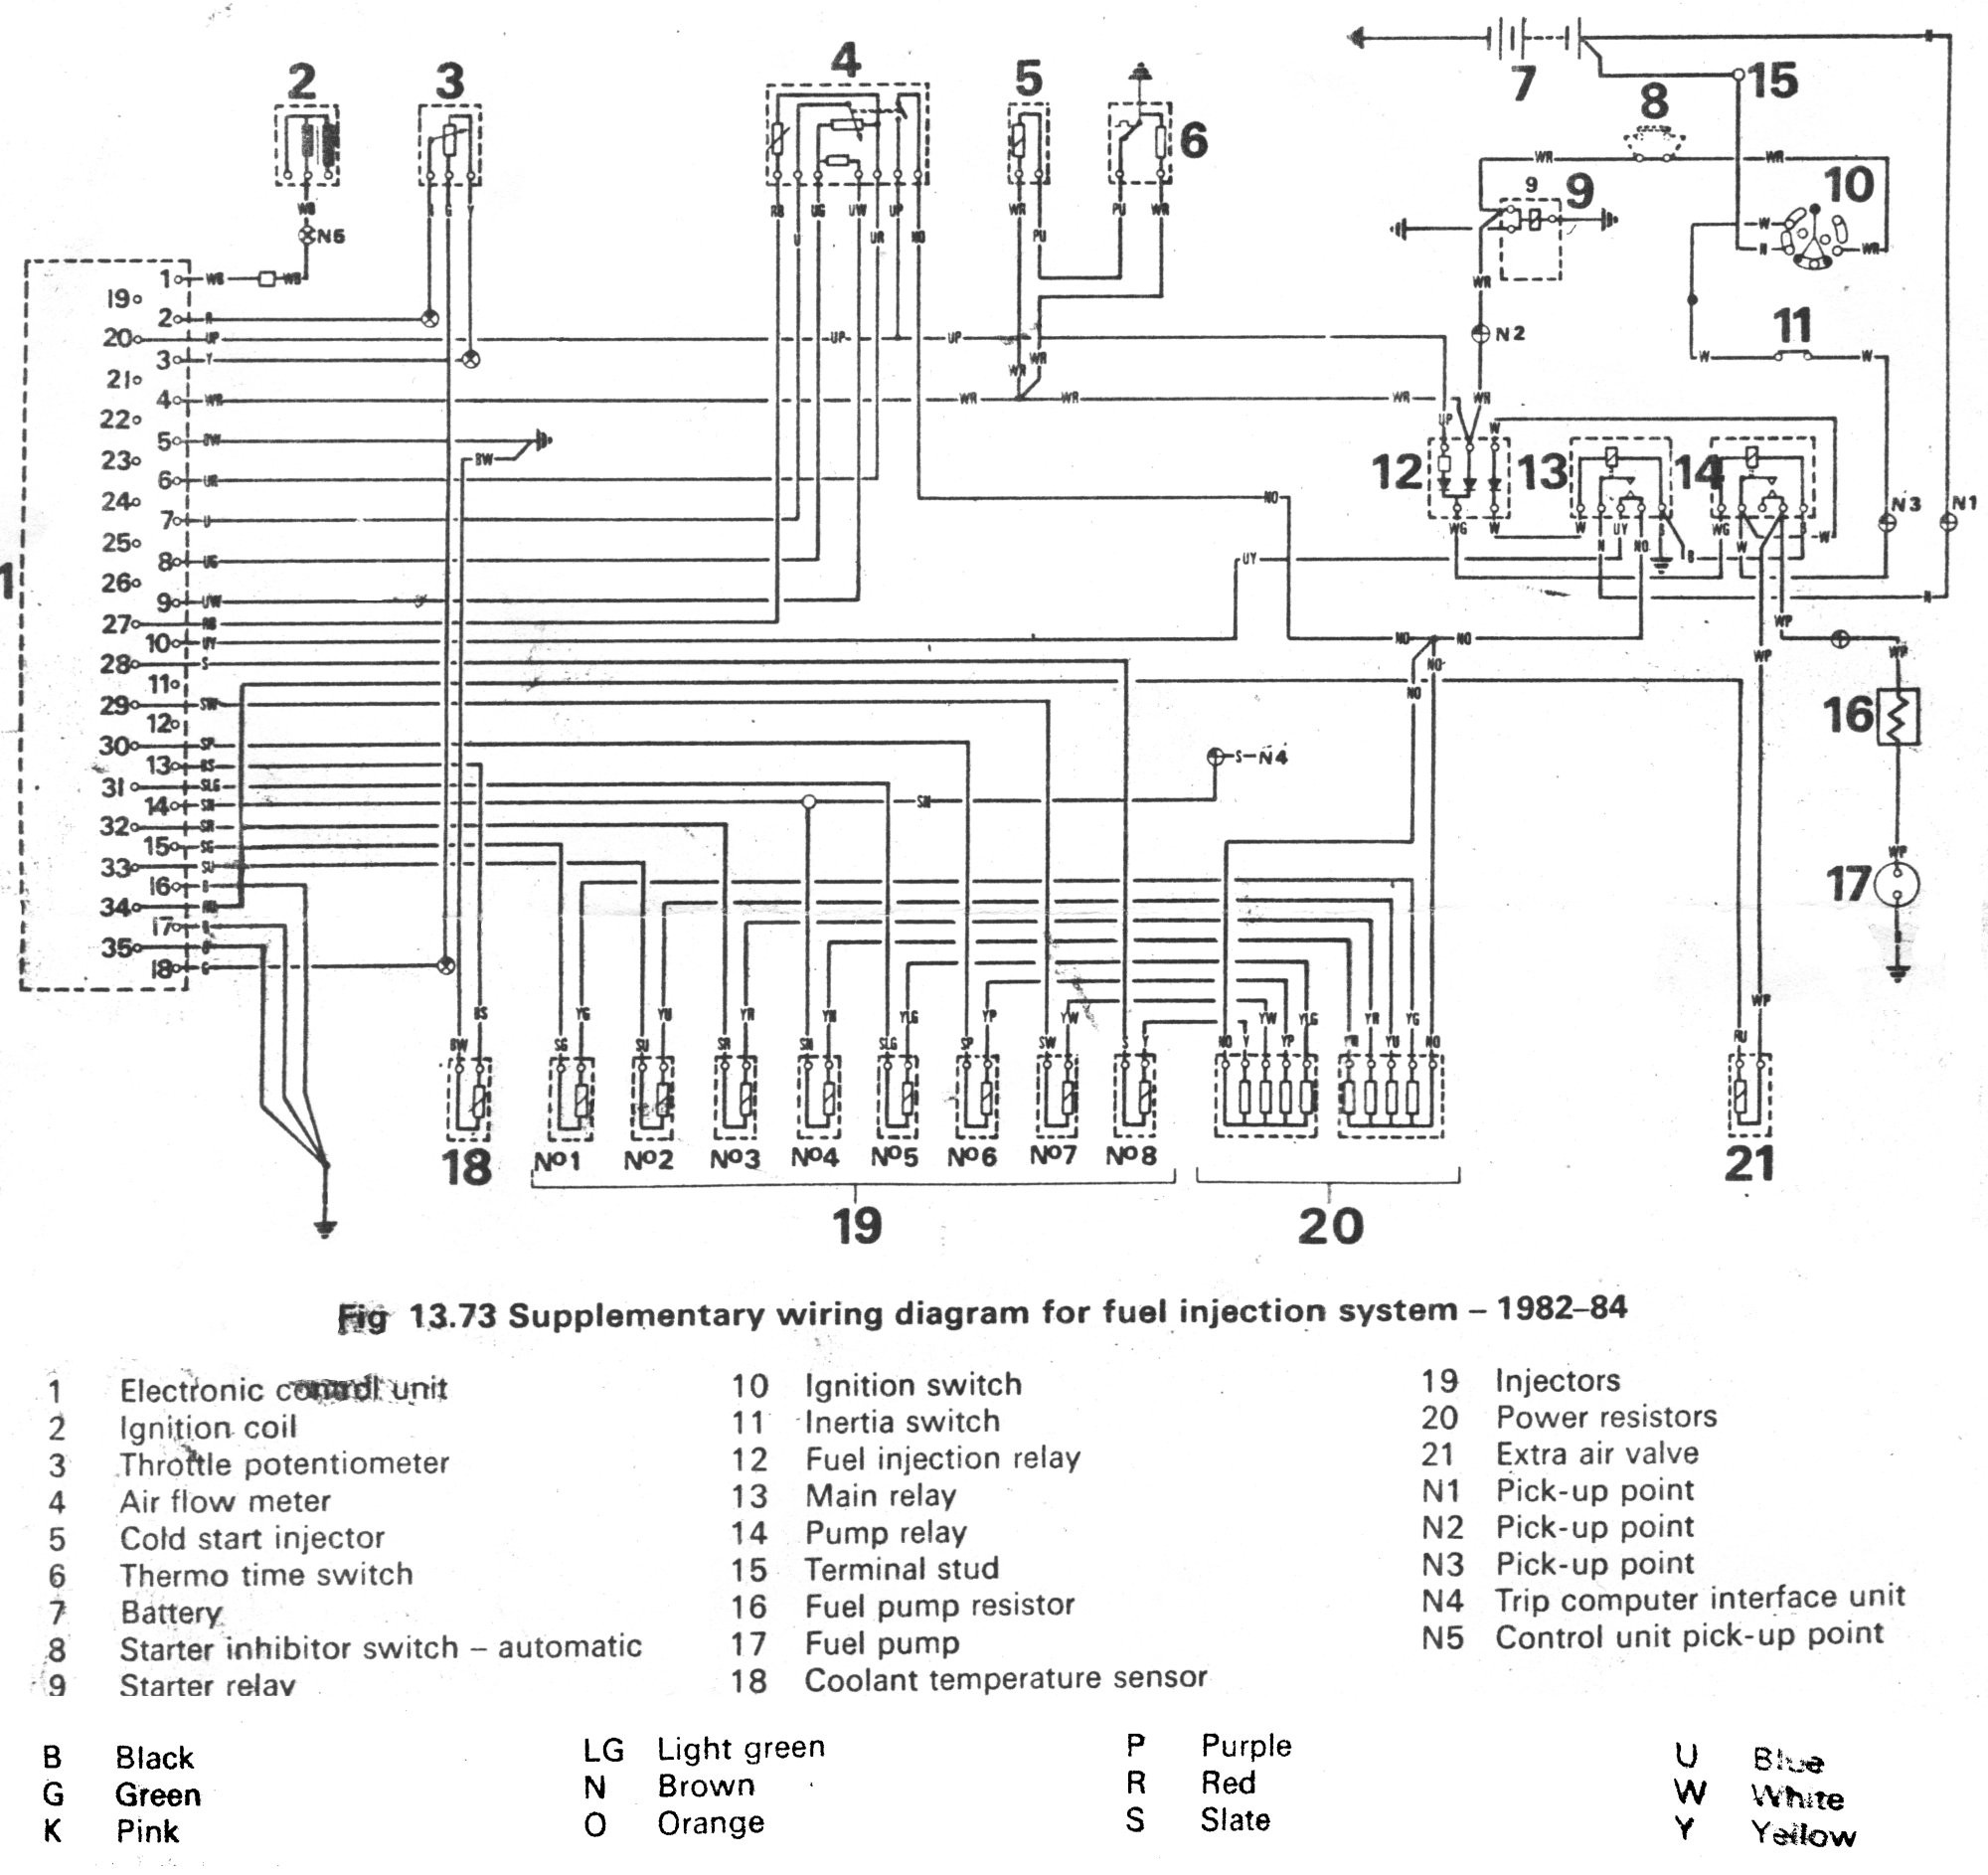 93 mustang wiring diagram ford mustang gt 98 fuel pump not